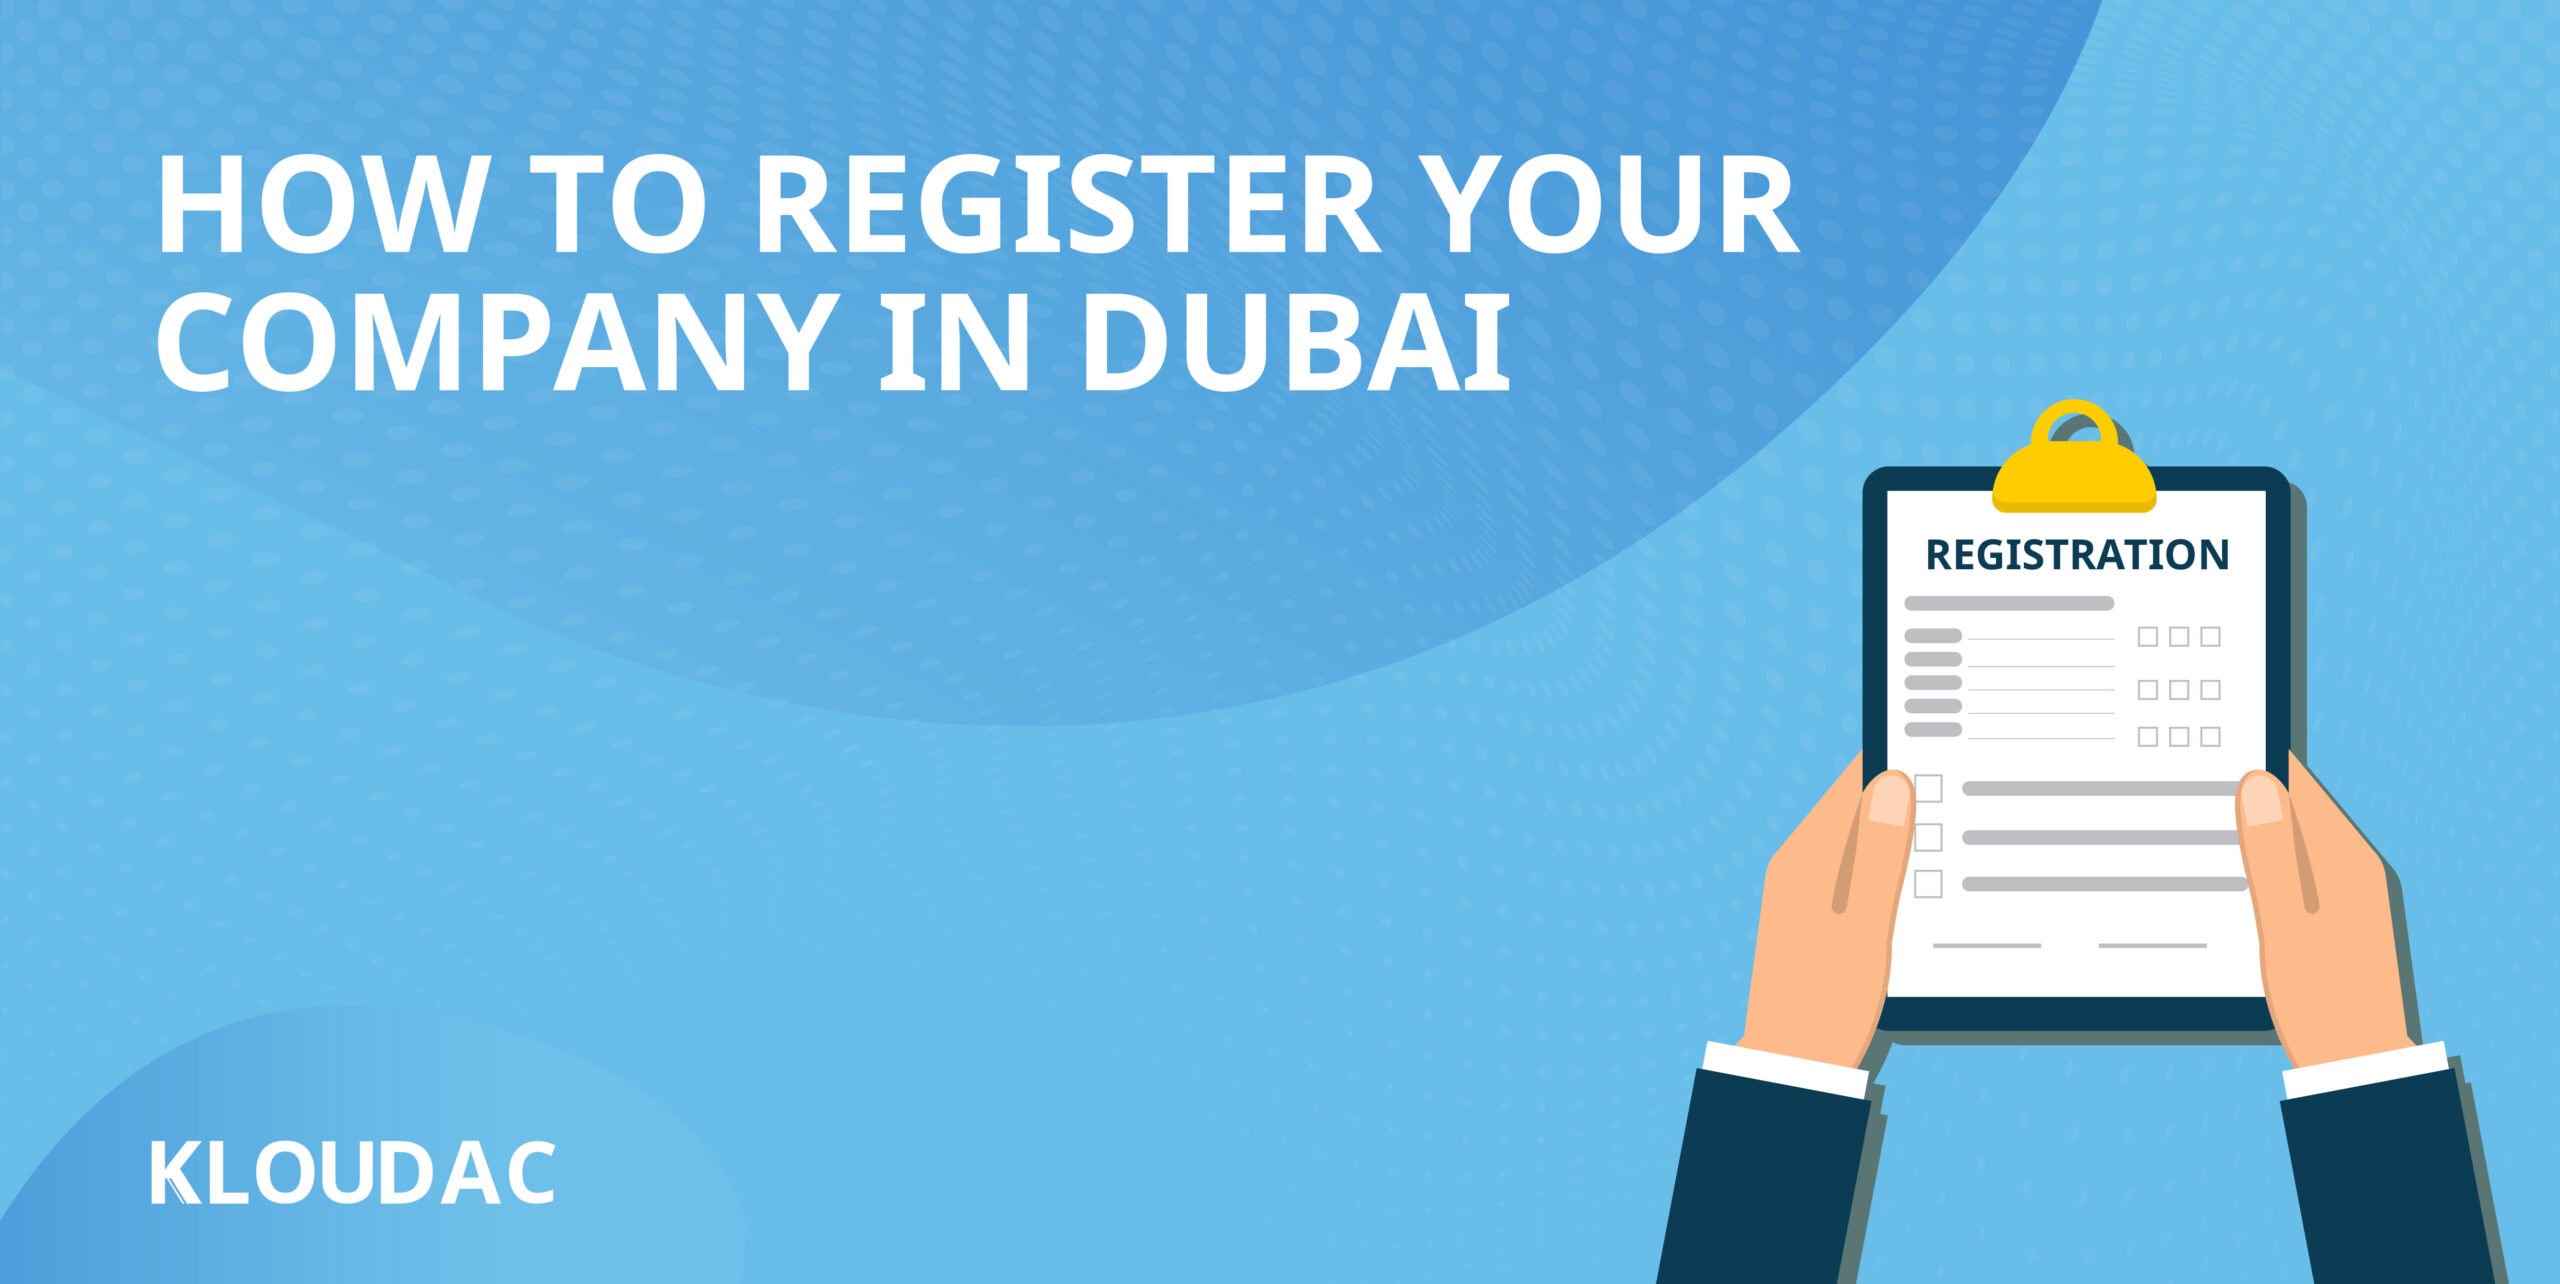 How to register your company in Dubai